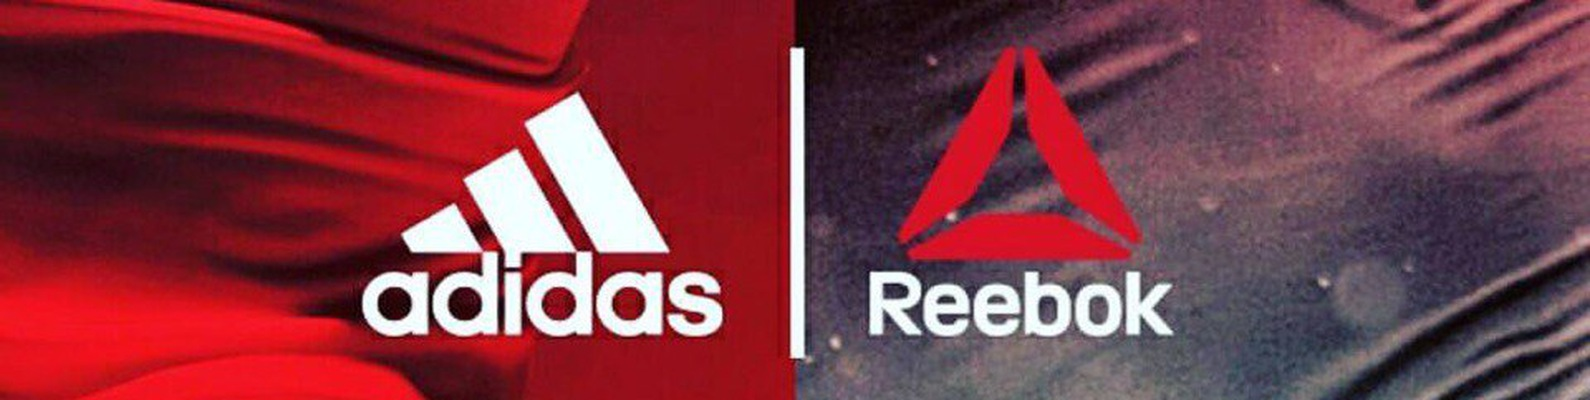 adidas and reebok merger and acquisition Adidas said wednesday it will buy shoemaker reebok for $38 billion, giving the company about 20 percent of the us market and the potential to better challenge leader nike inc on its home turf.